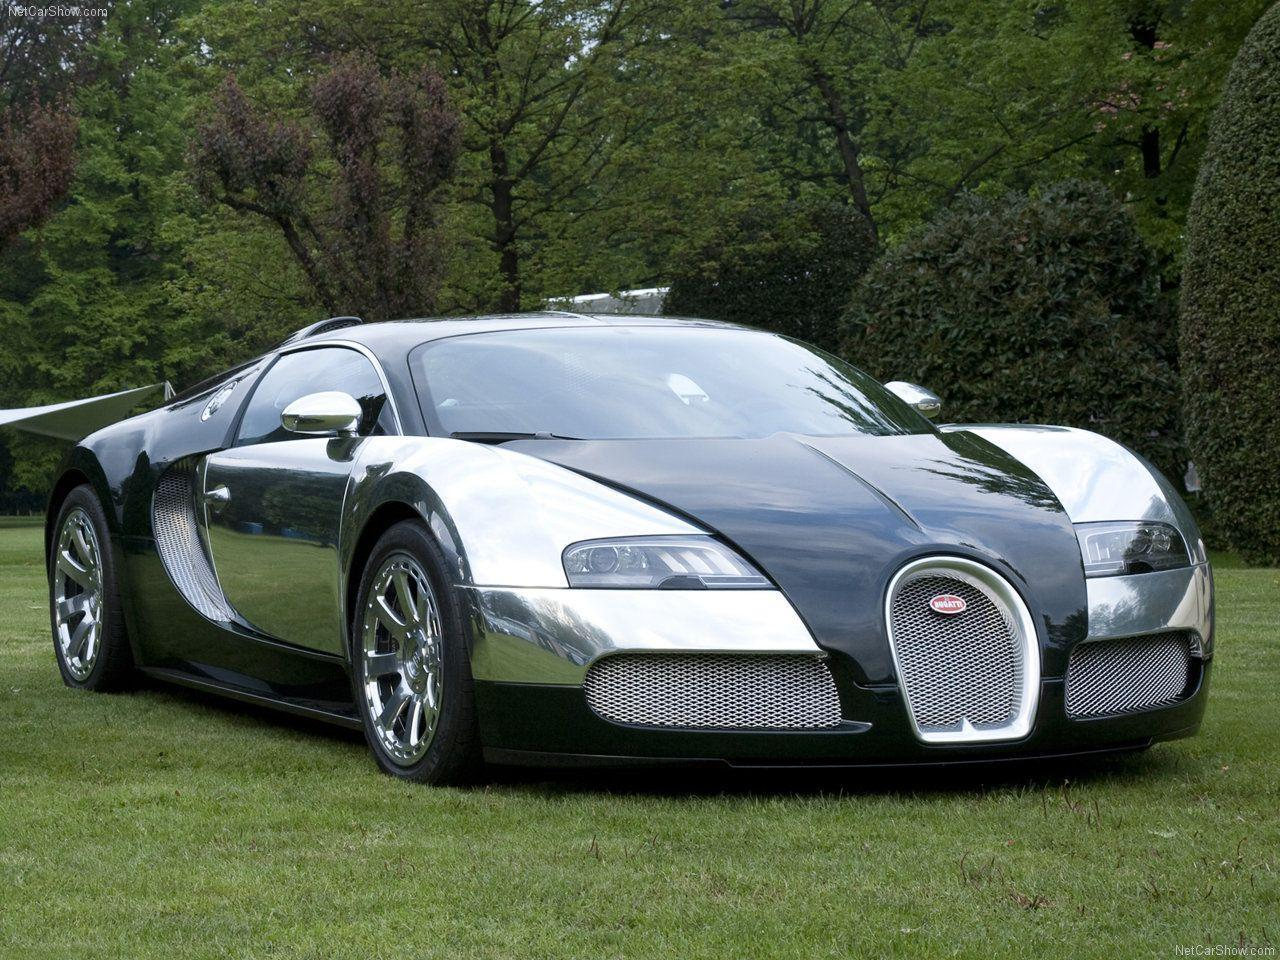 Wallpapers For > Bugatti Veyron Wallpaper 2014